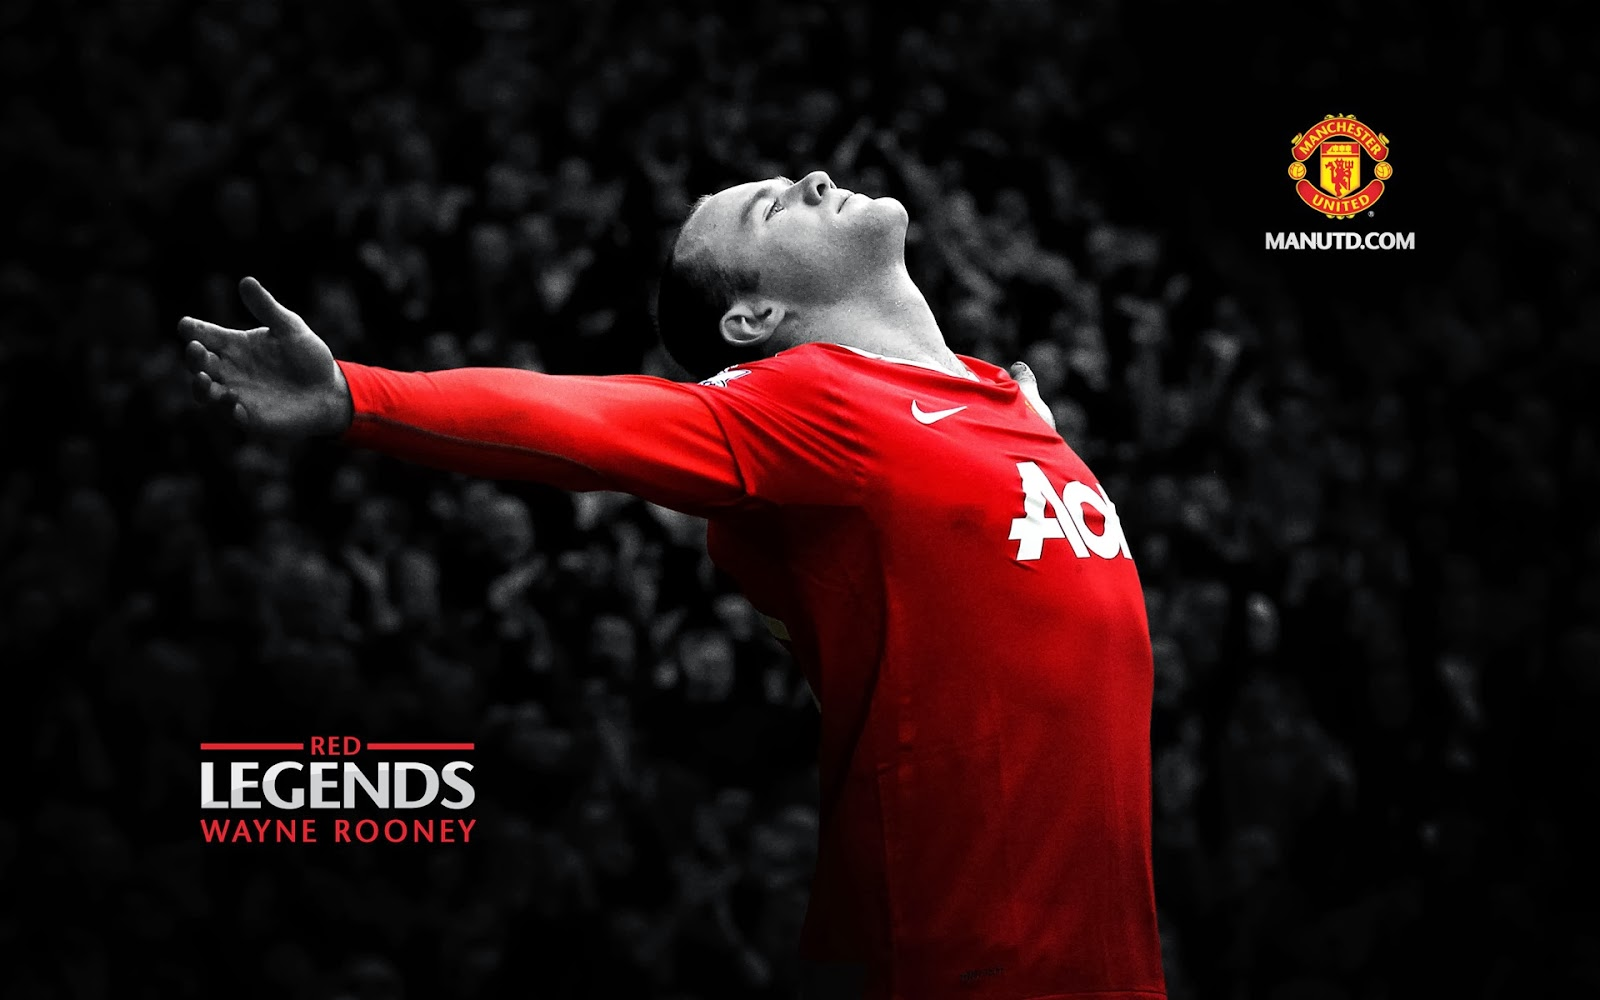 Rooney: Red Legends Manchester United